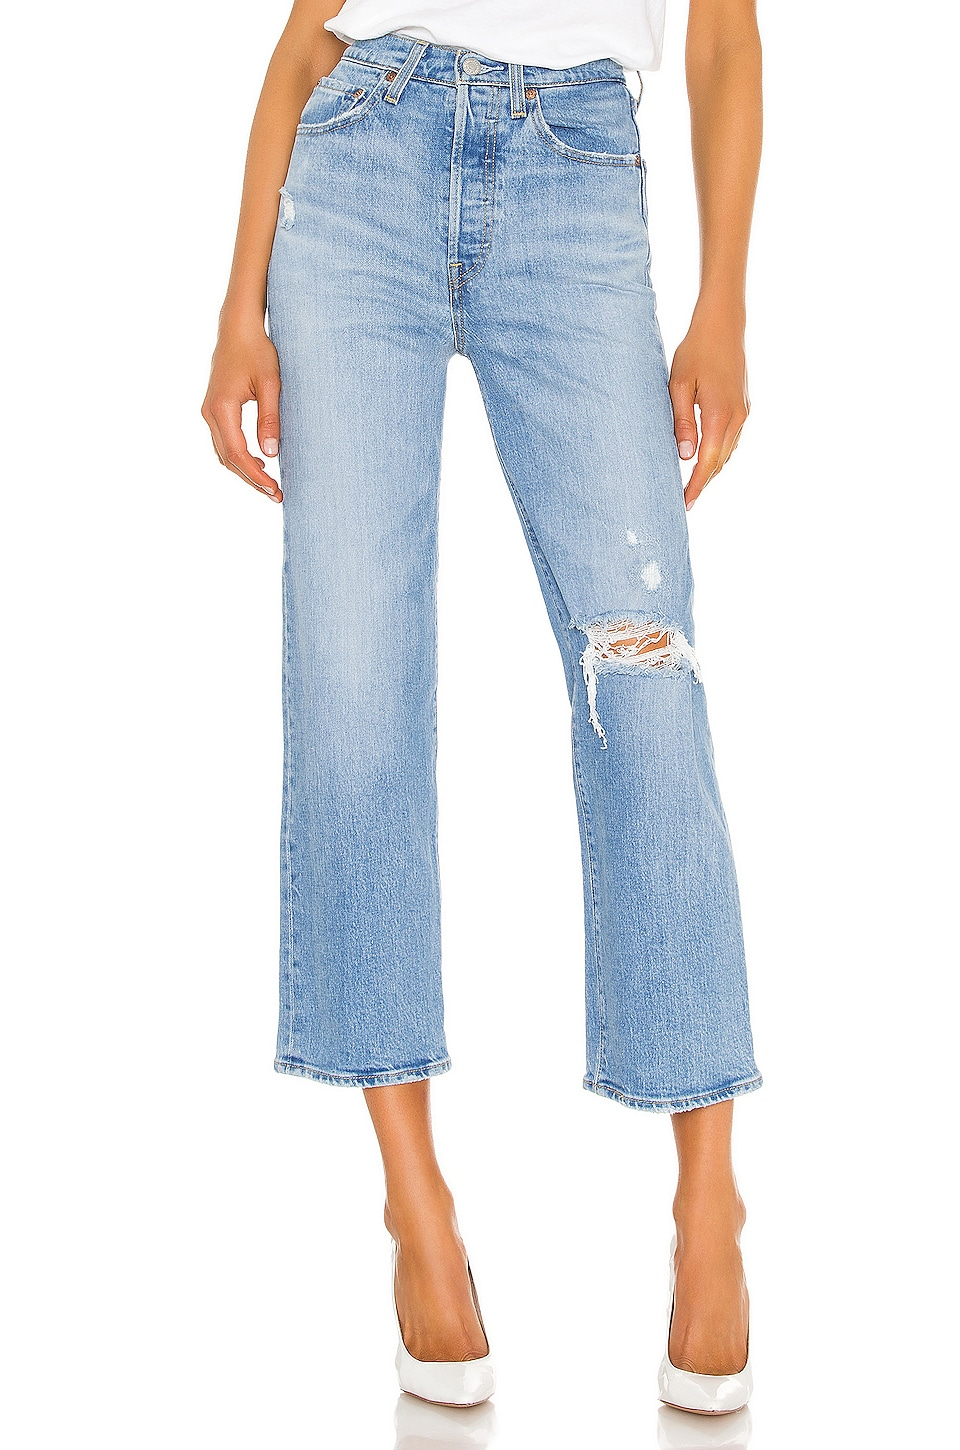 Ribcage Straight Ankle             LEVI'S                                                                                                       CA$ 139.34 4